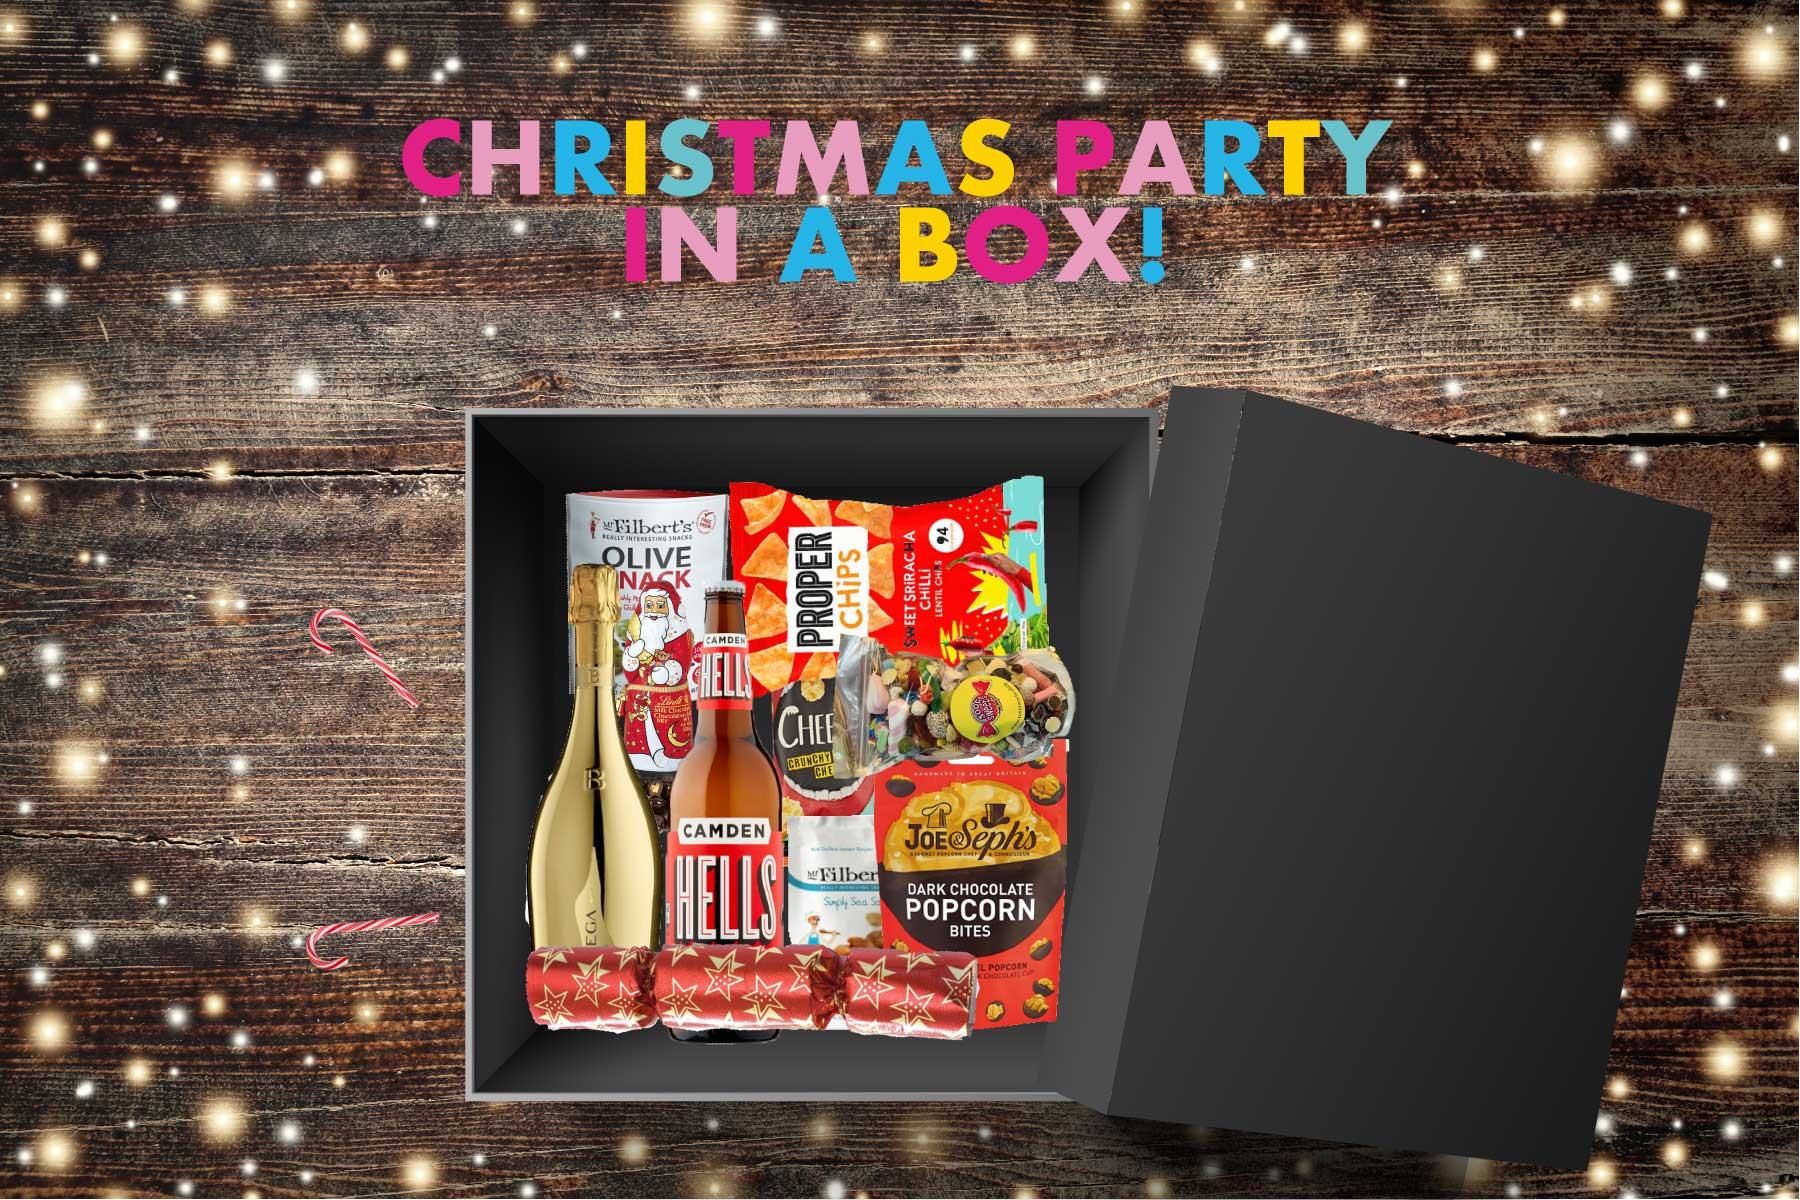 Christmas Party in a Box, Christmas Box, Christmas Ideas for Work, Works Christmas Party